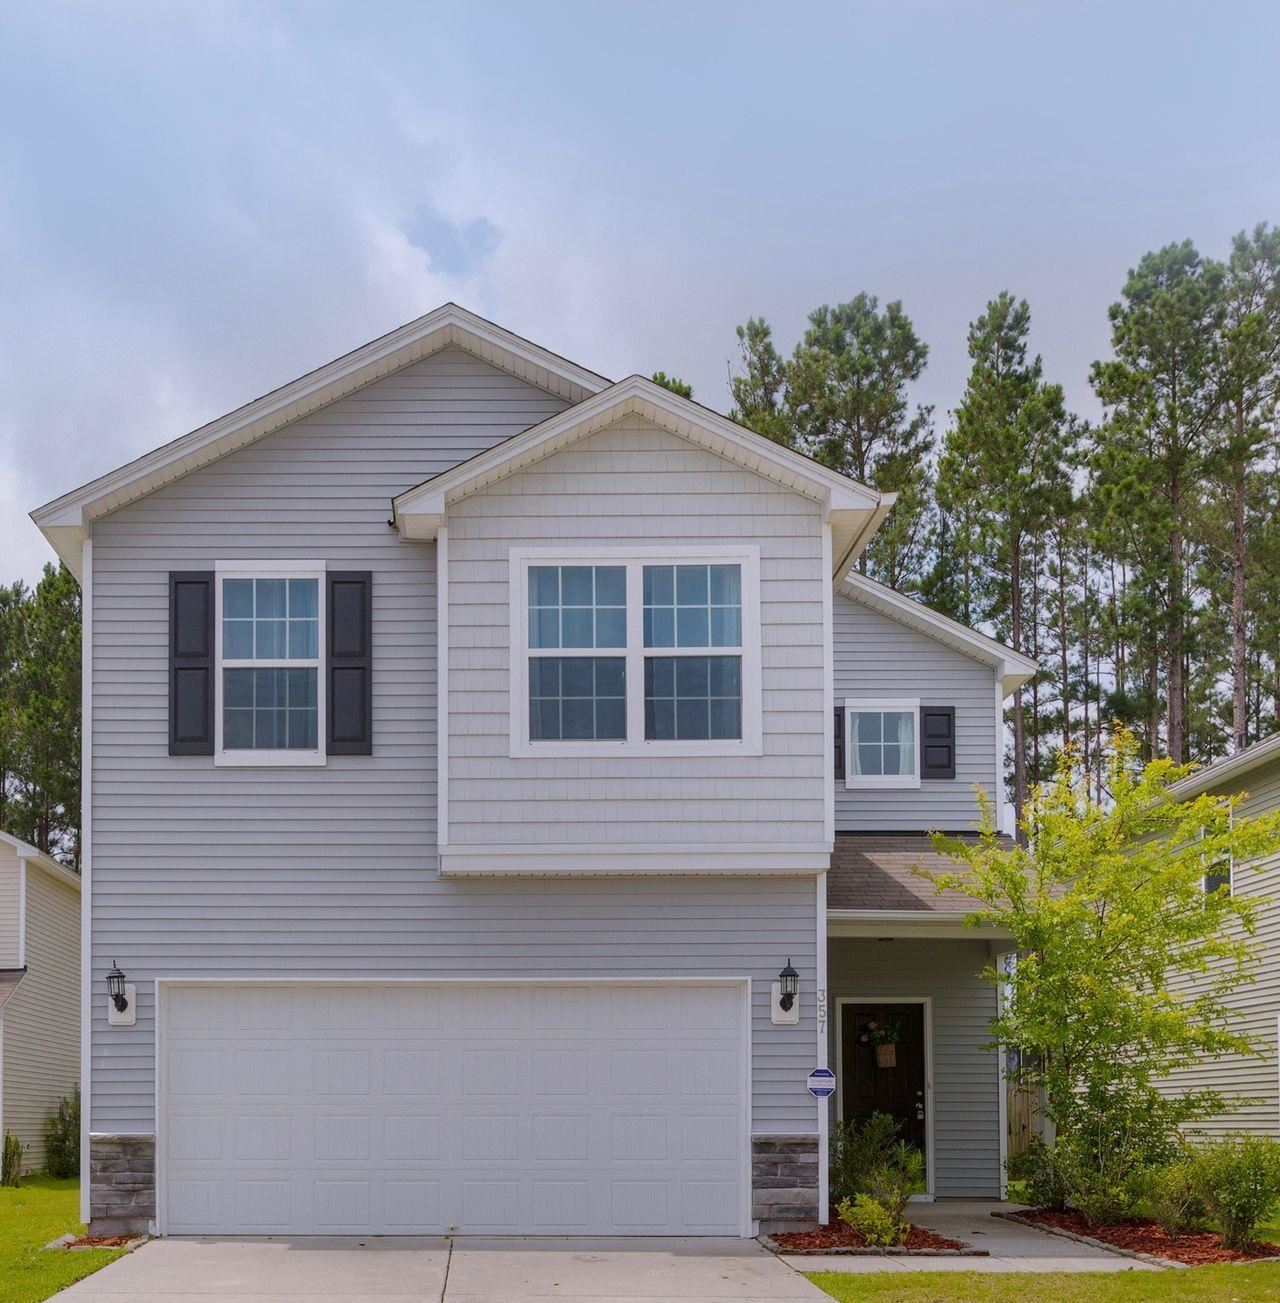 Photo of 357 Iveson Road, Summerville, SC 29486 (MLS # 20014091)